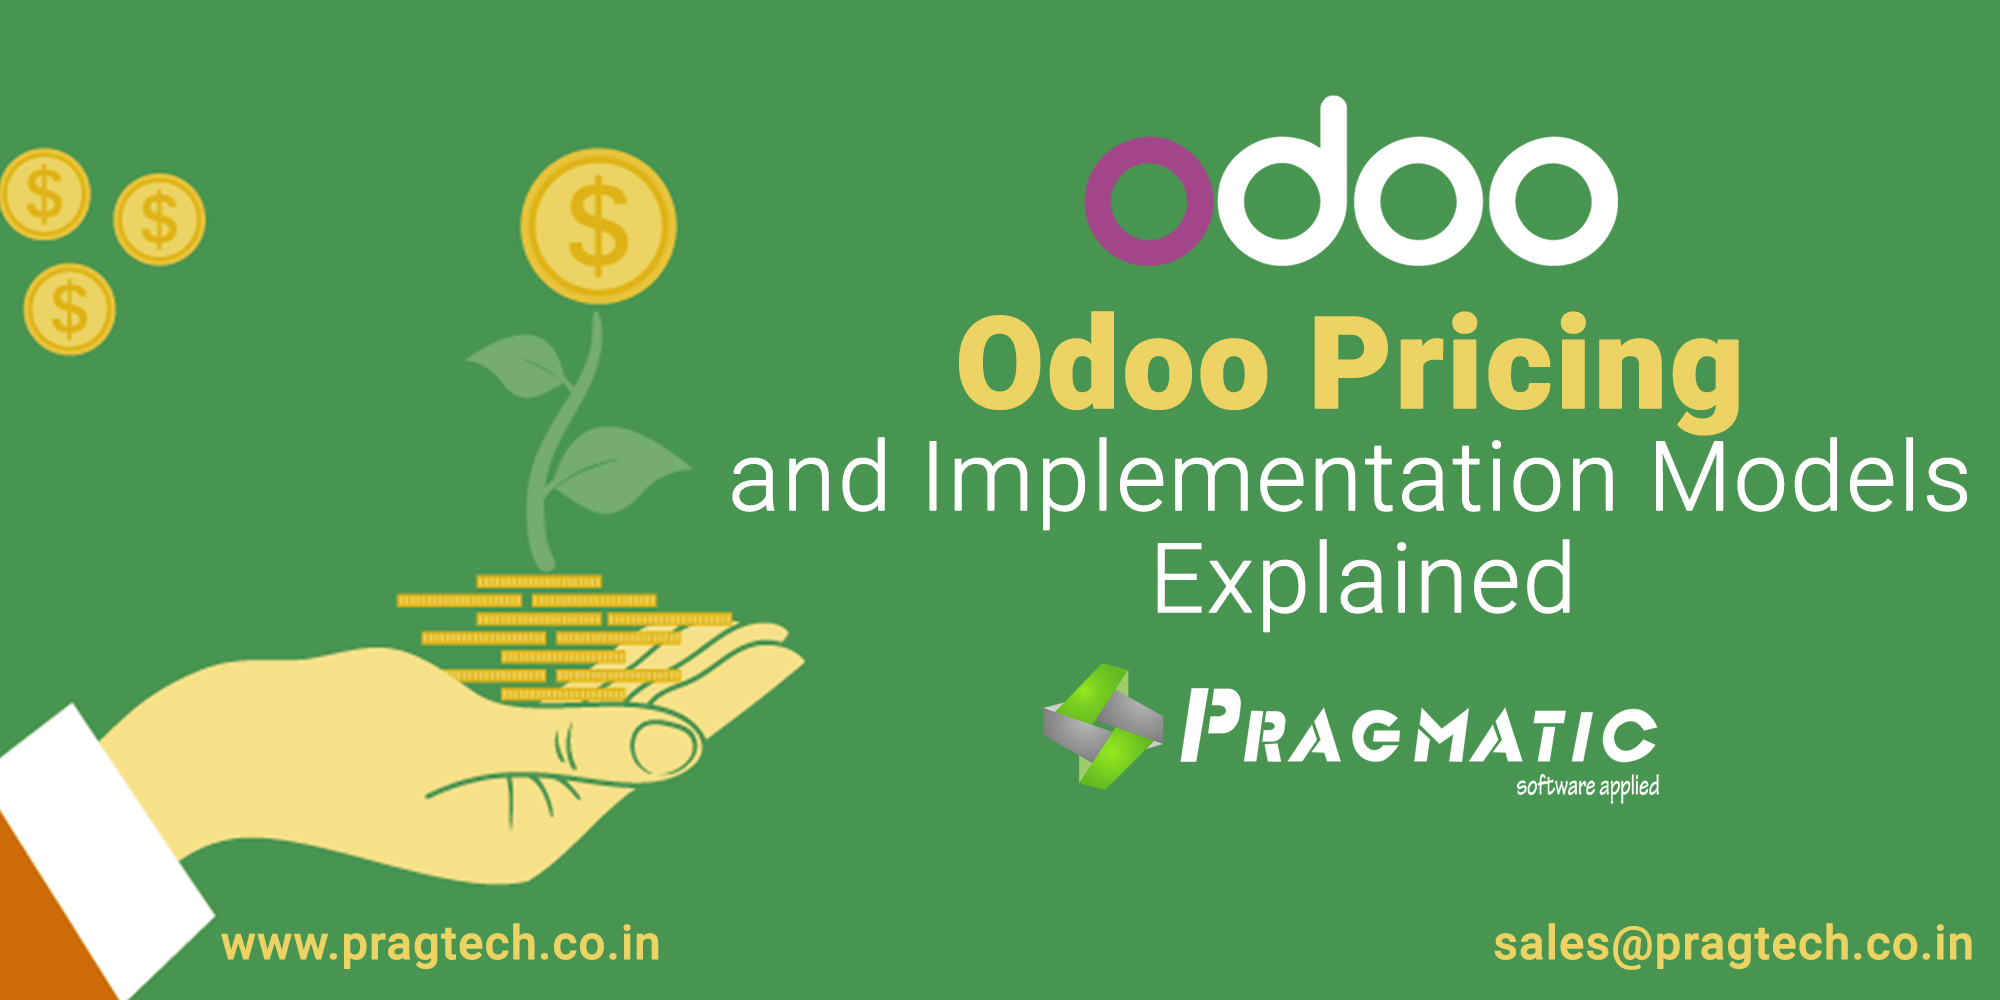 Odoo Pricing and Implementation and Hosting Models Explained